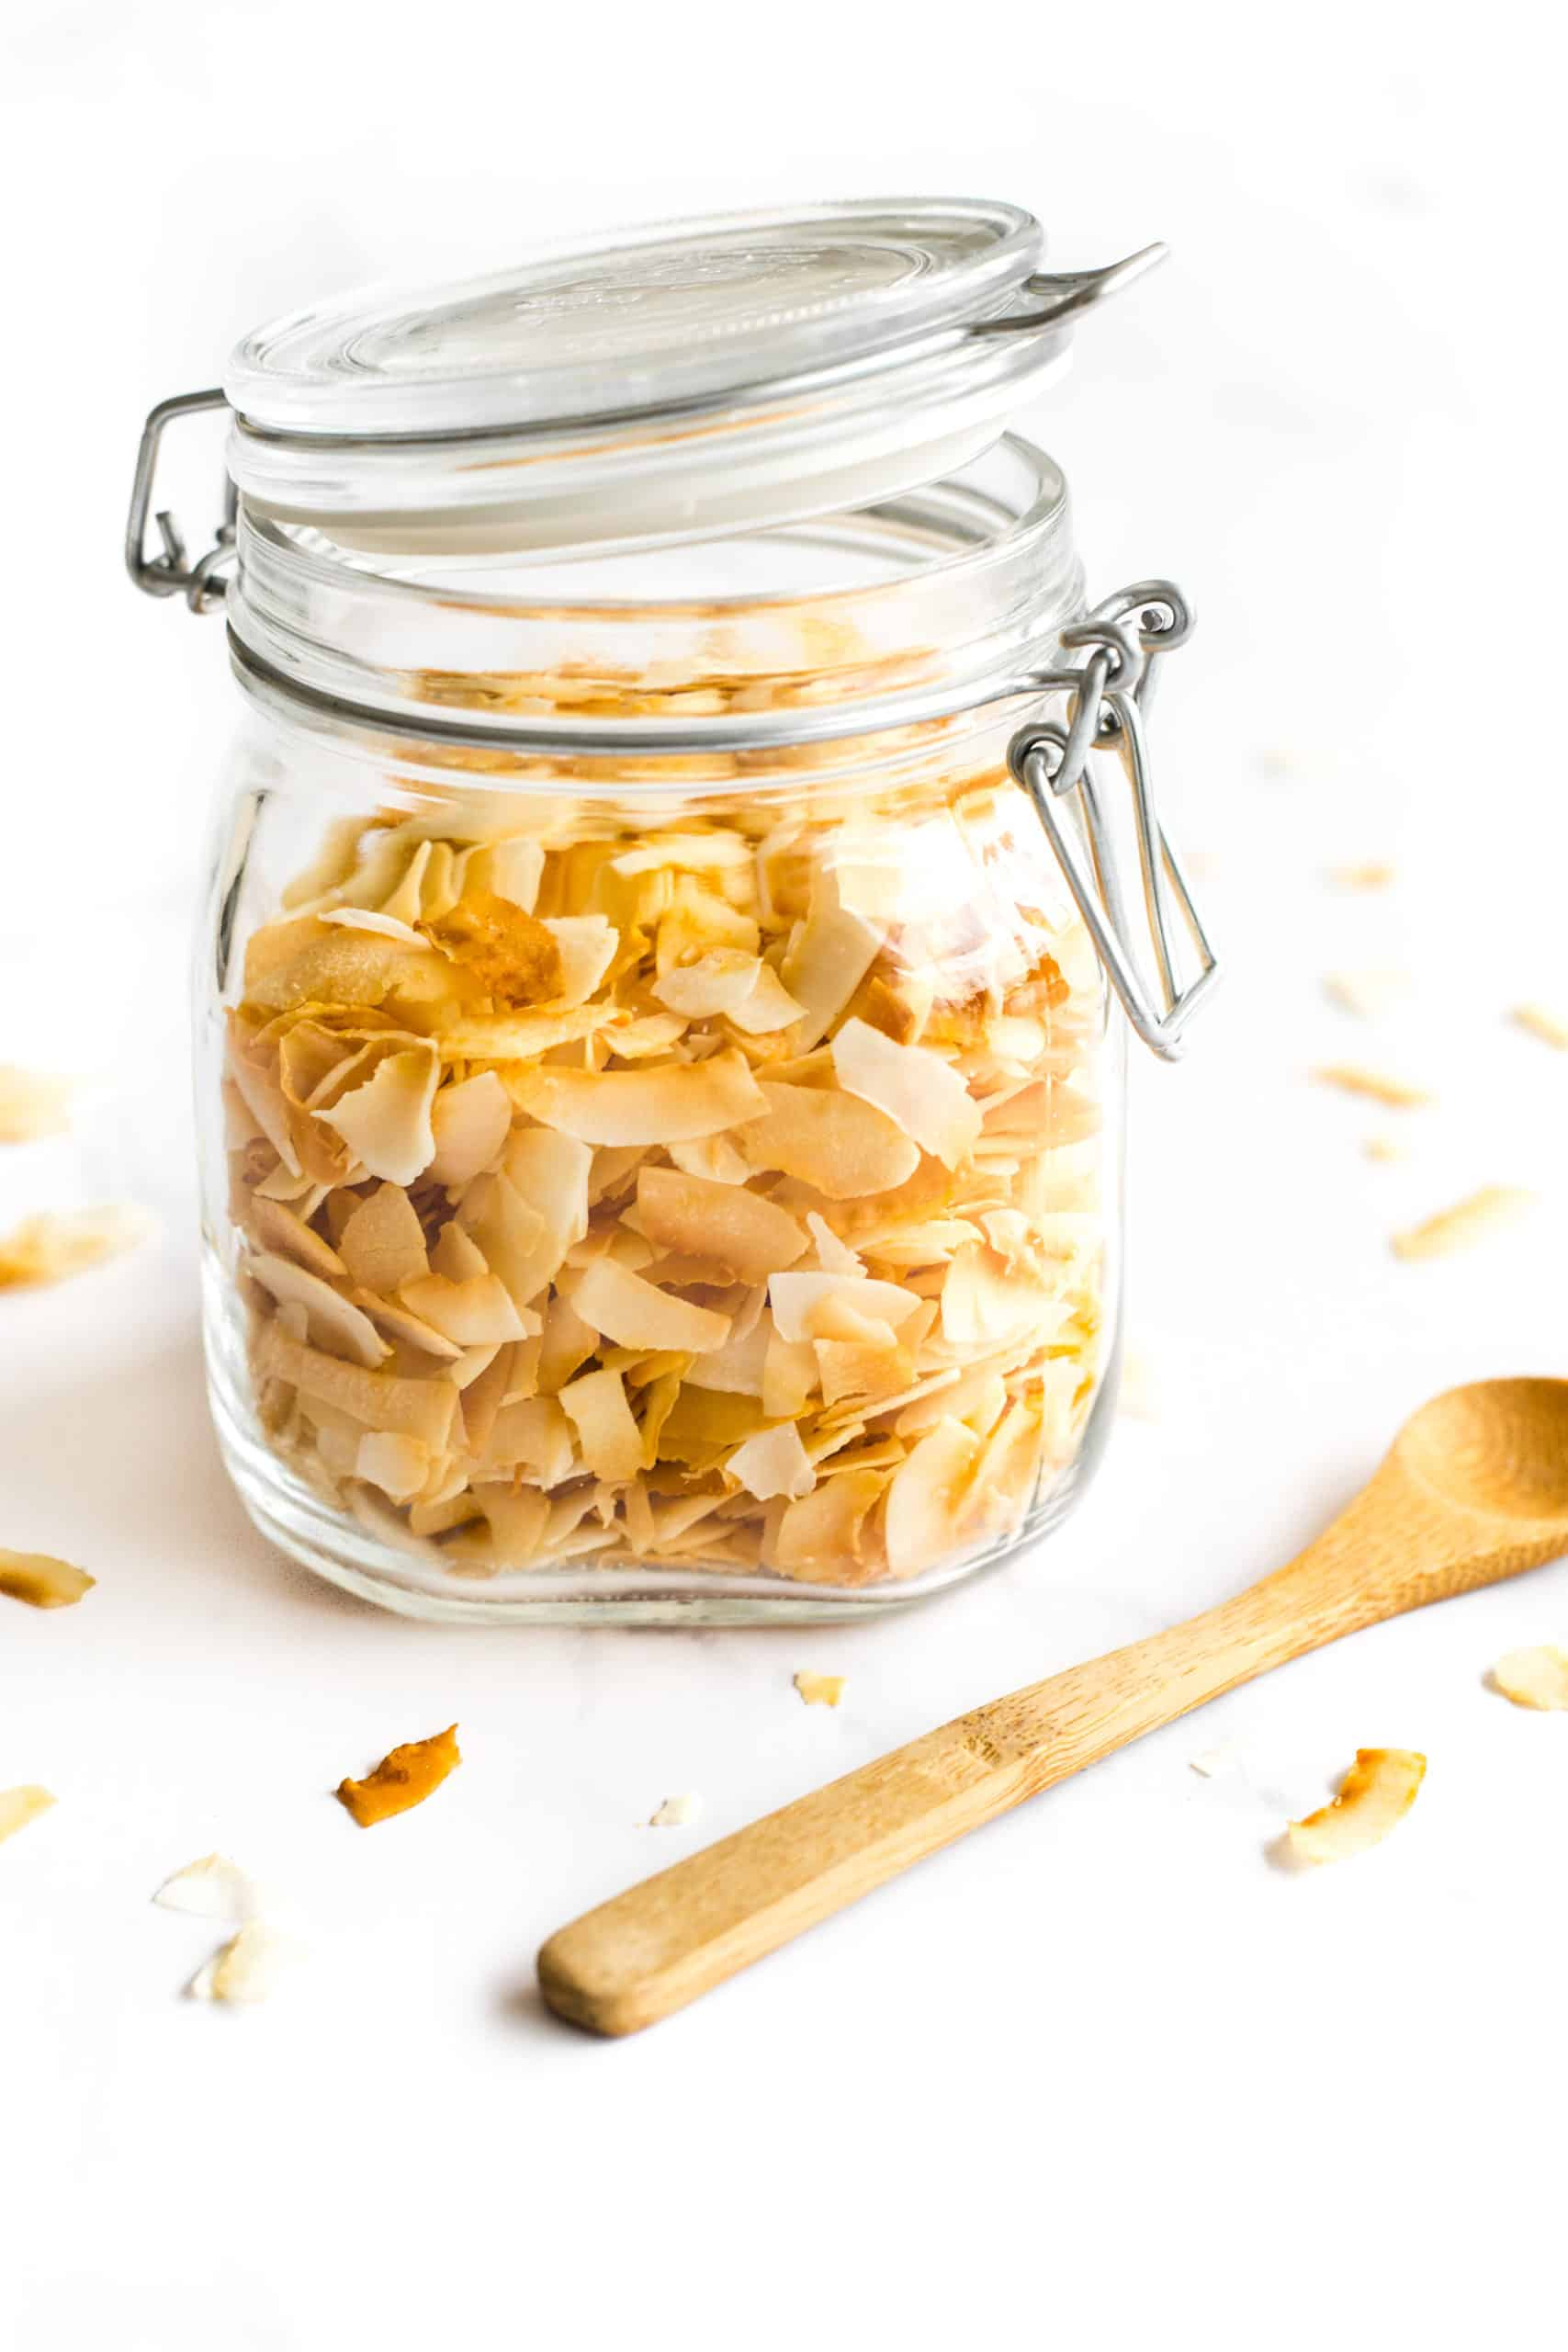 Coconut chips in a glass jar